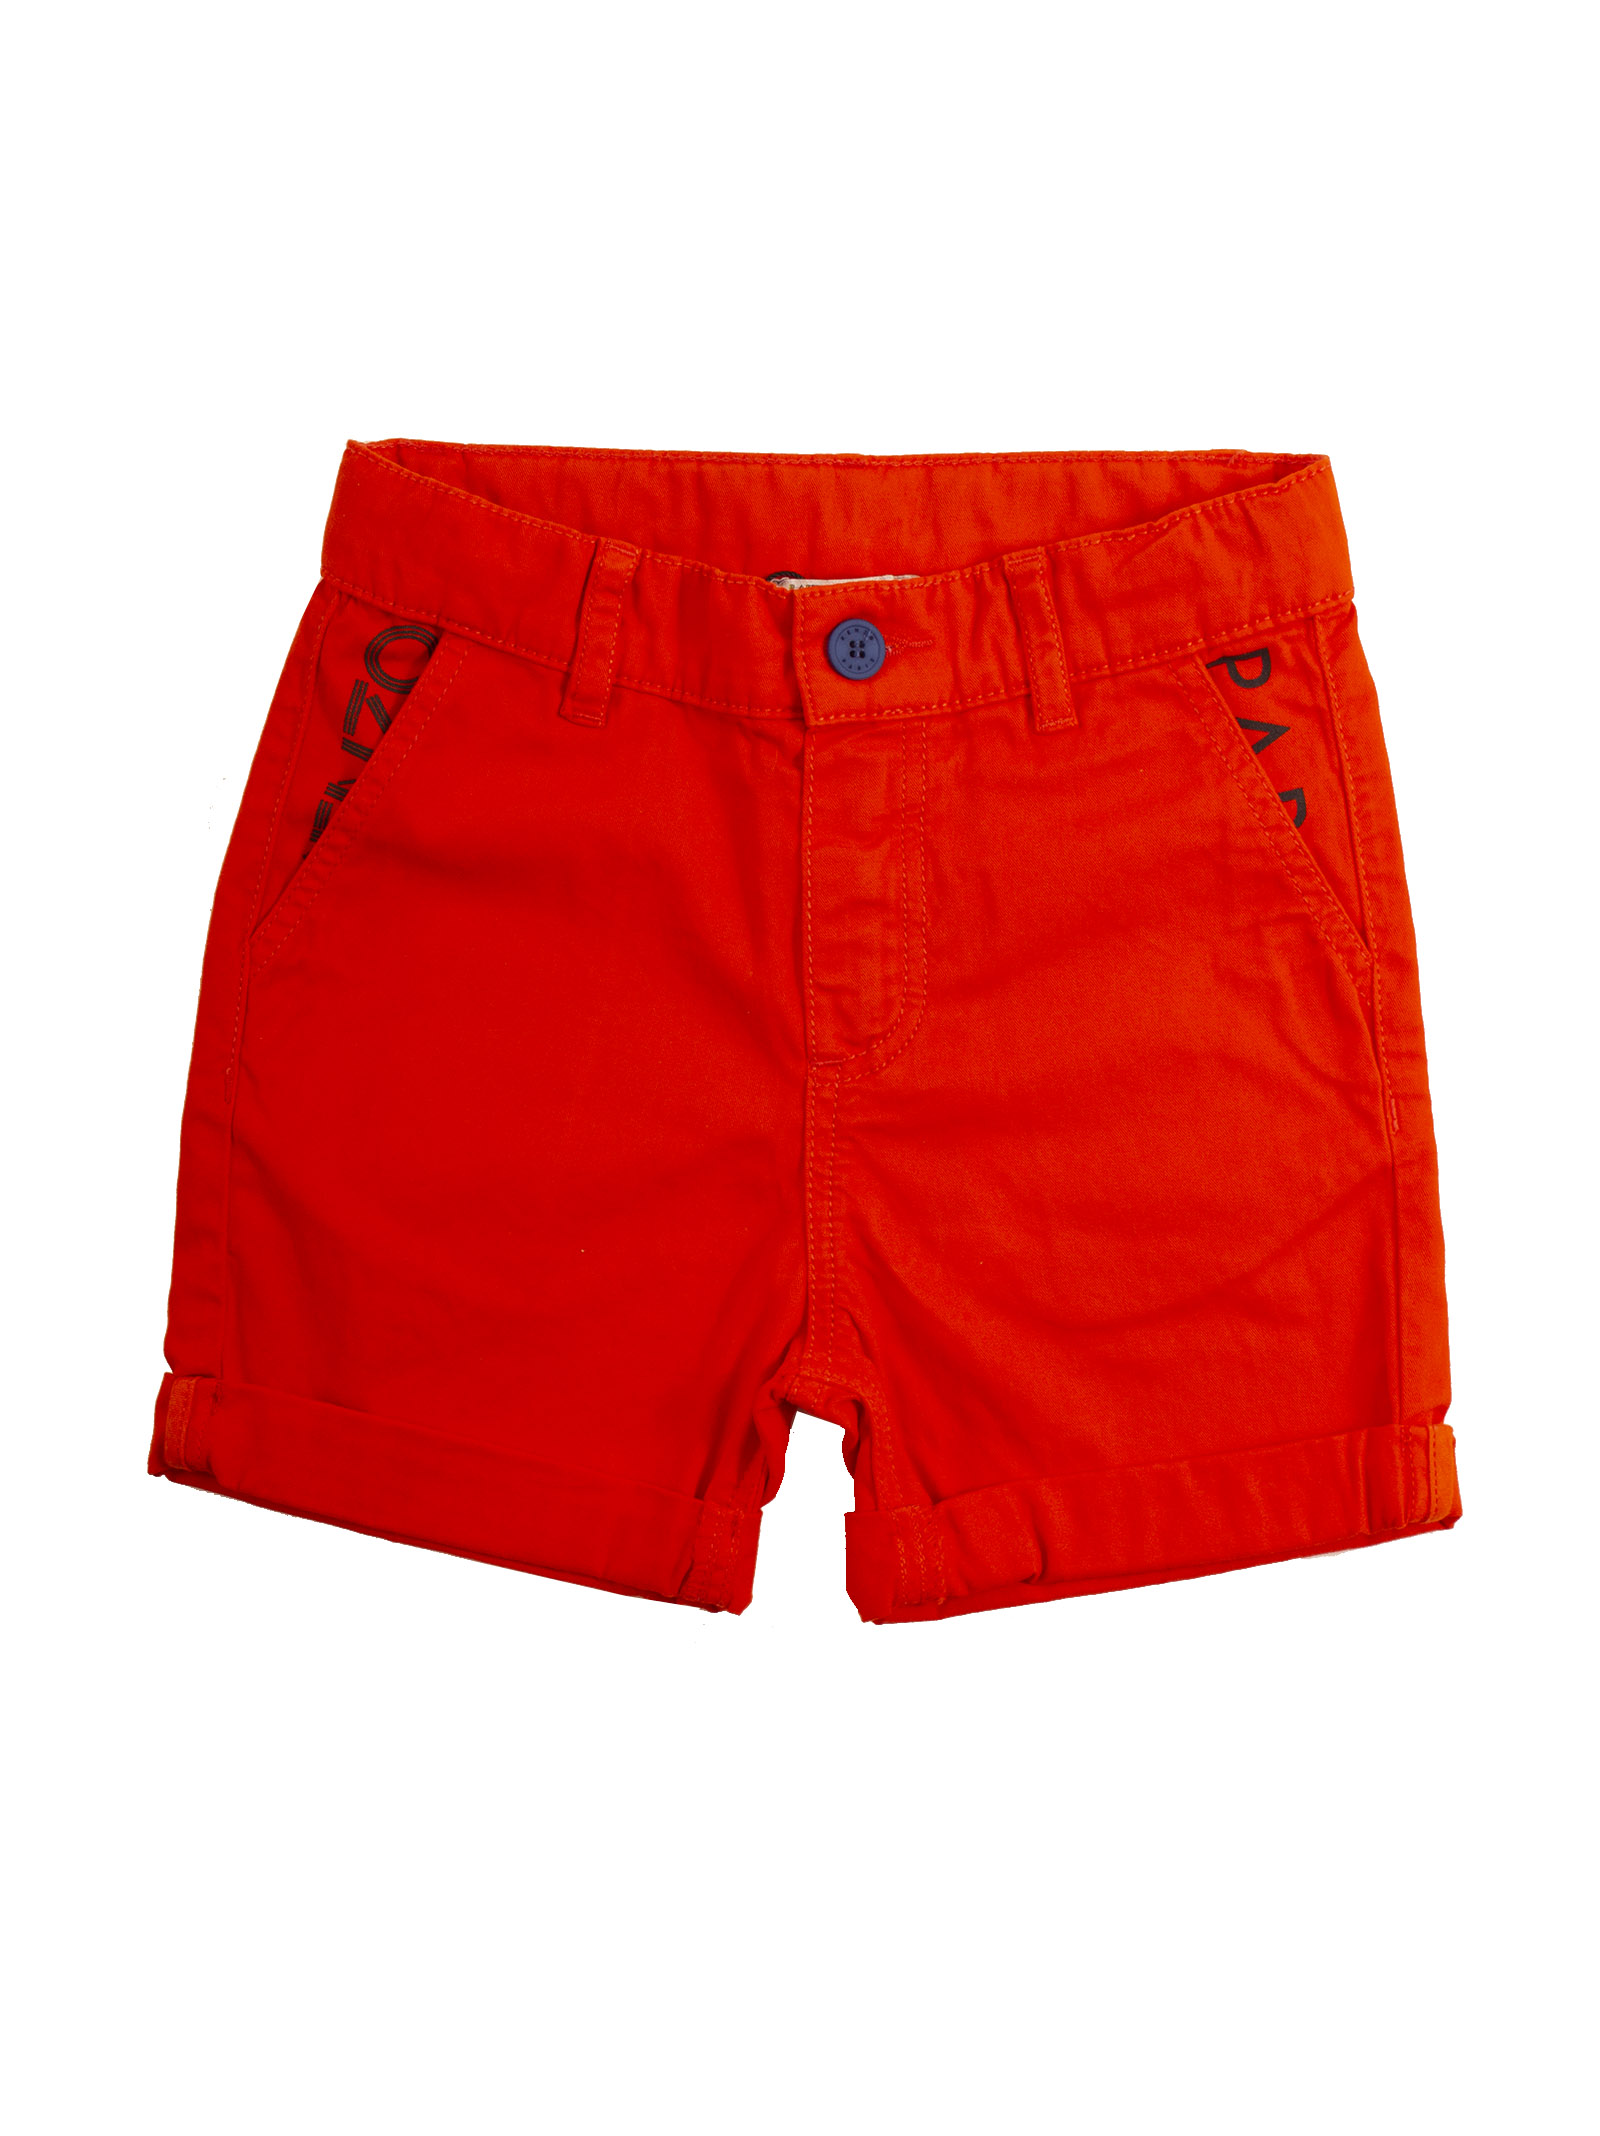 72a5f7d3eec HOME   CATEGORIES   CLOTHING   BERMUDA   CHILD PRINT SHORTS